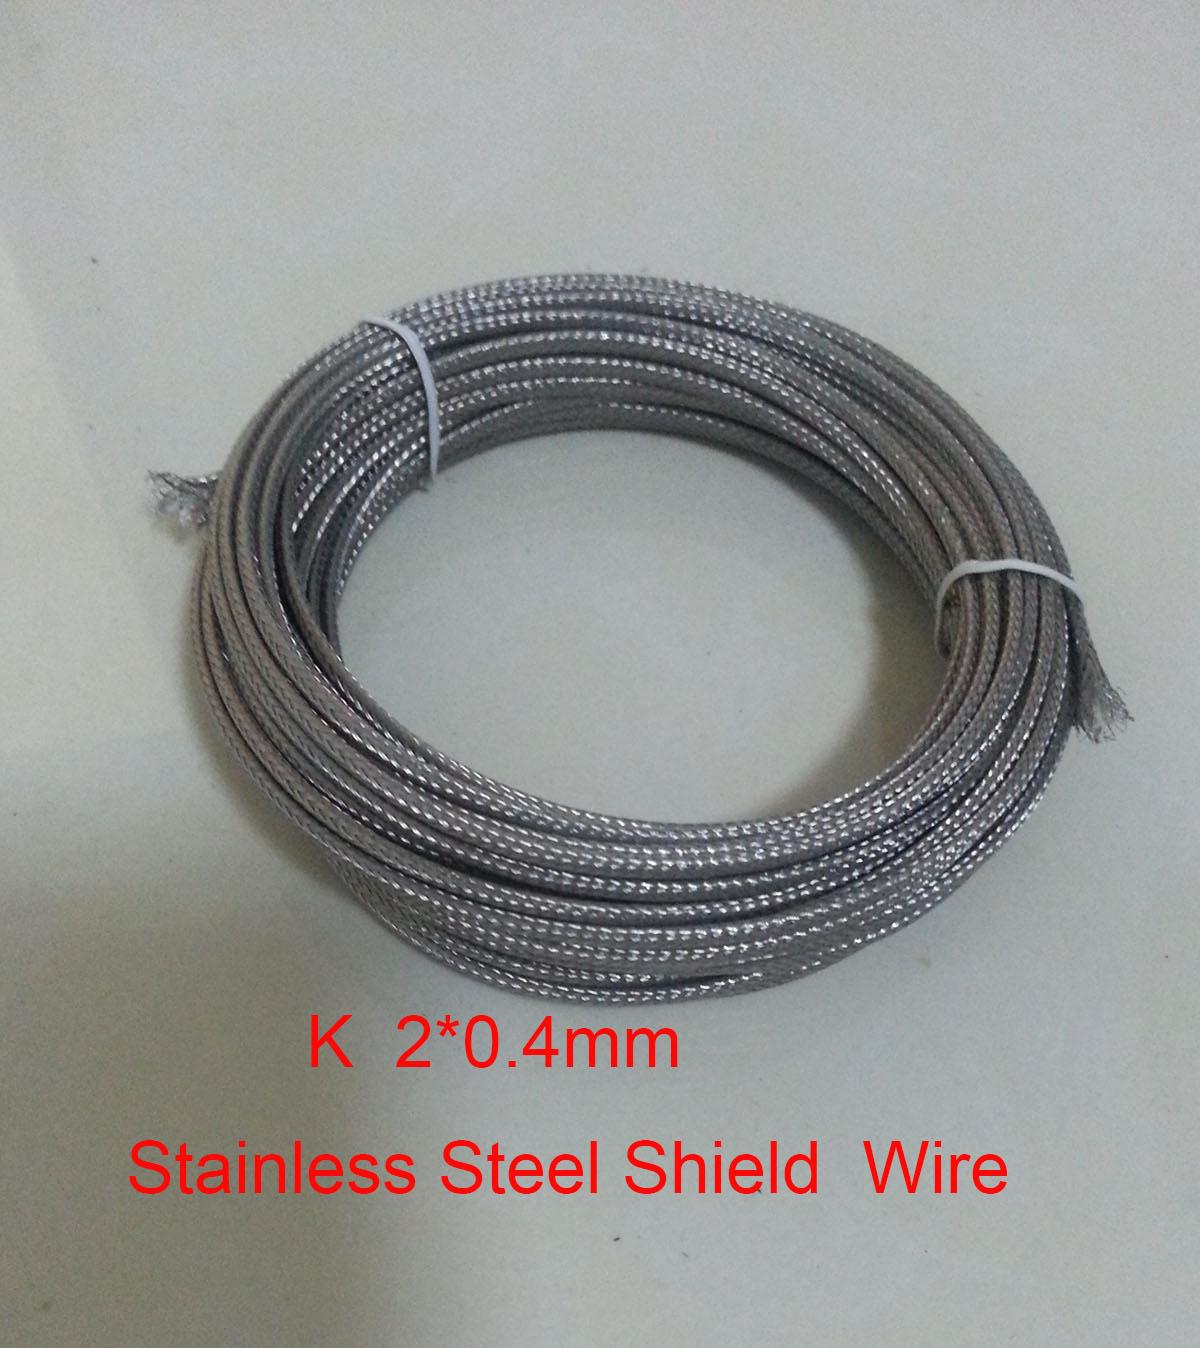 10 Meters2*0.4mm K Type Fiberglass Coated Stainless Steel Shield ...